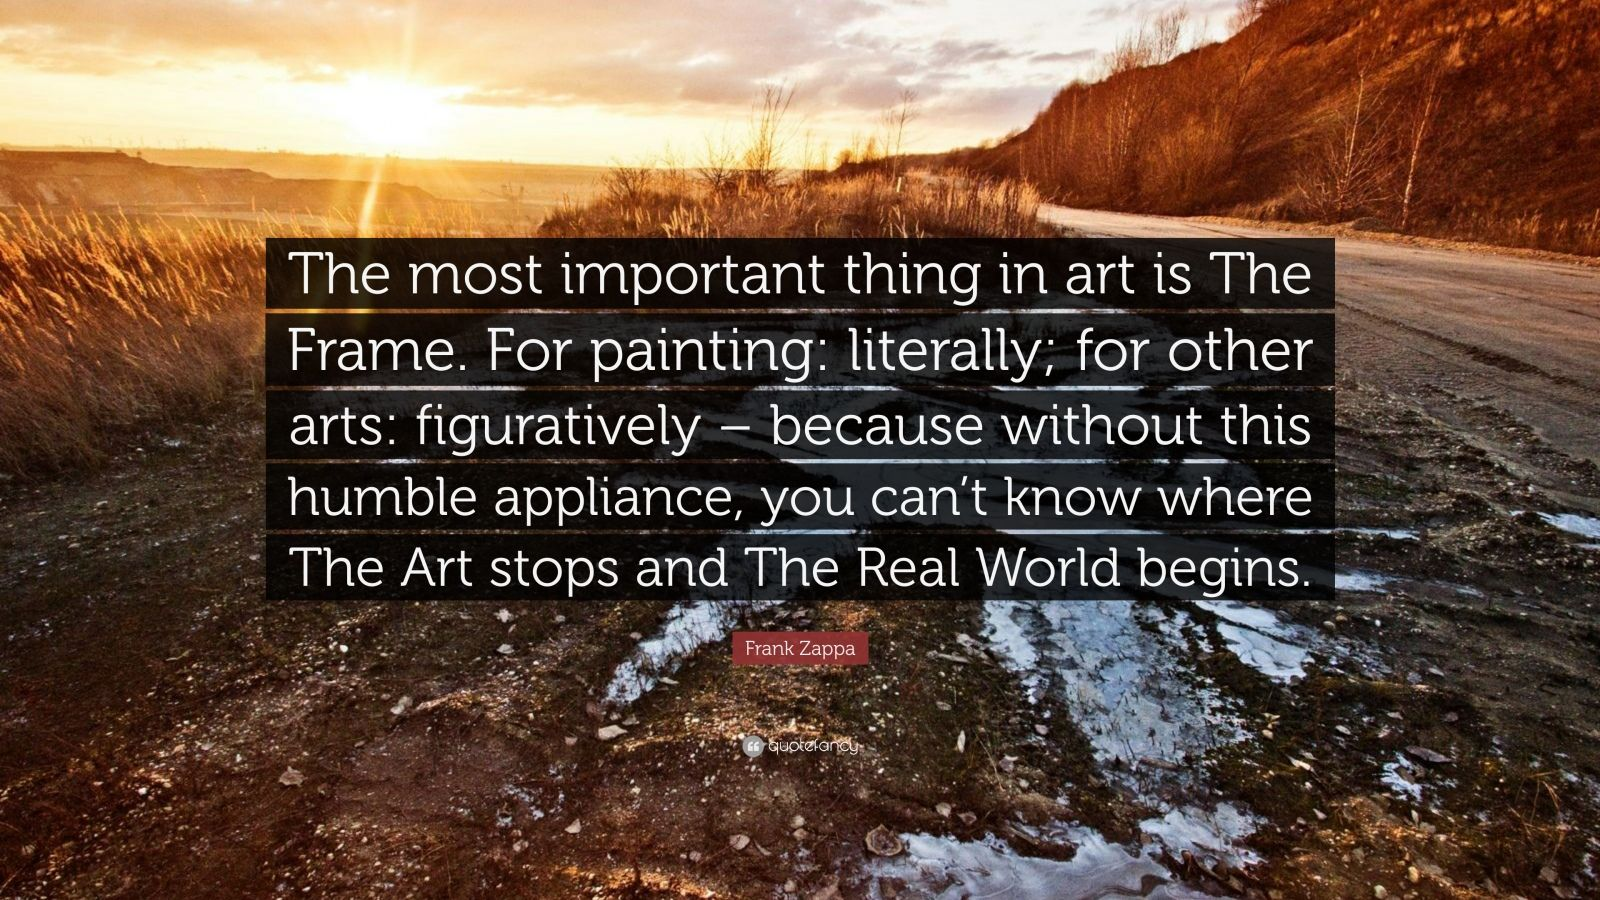 """Frank Zappa Quote: """"The most important thing in art is The Frame. For painting: literally; for other arts: figuratively – because without this humble appliance, you can't know where The Art stops and The Real World begins."""""""